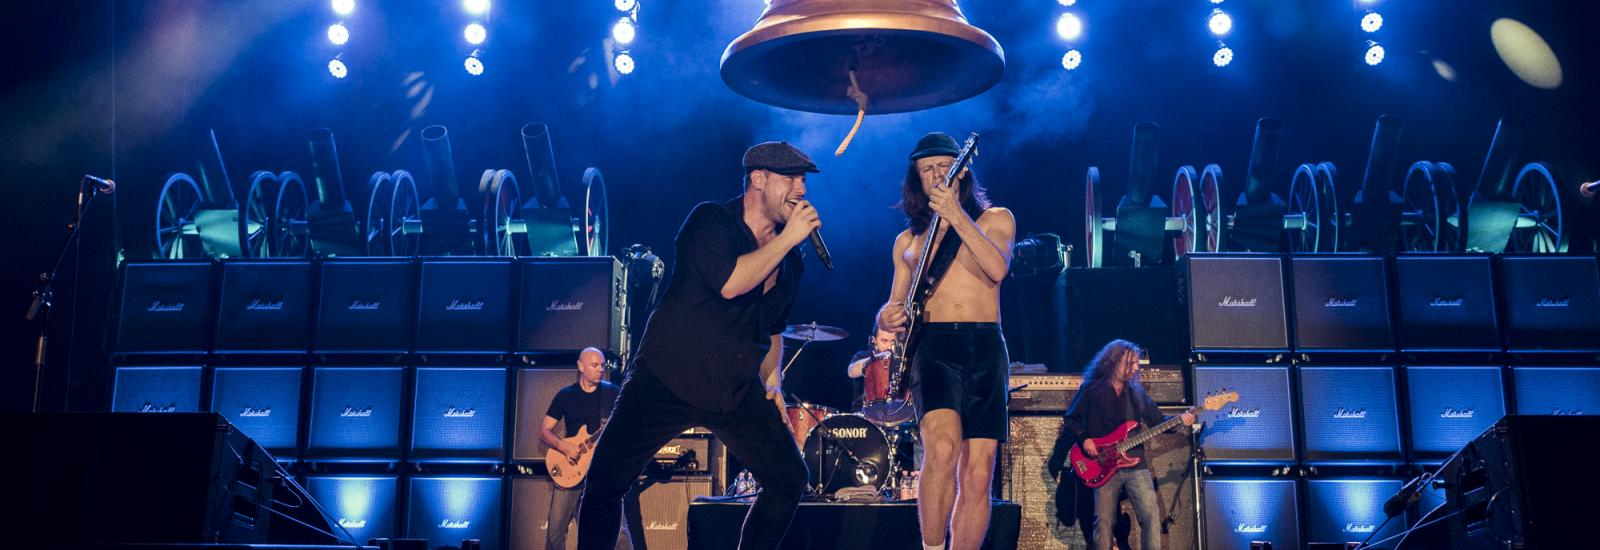 Barock - AC/DC TRibute Show - am 11.01.2019 live in der Posthalle Würzburg